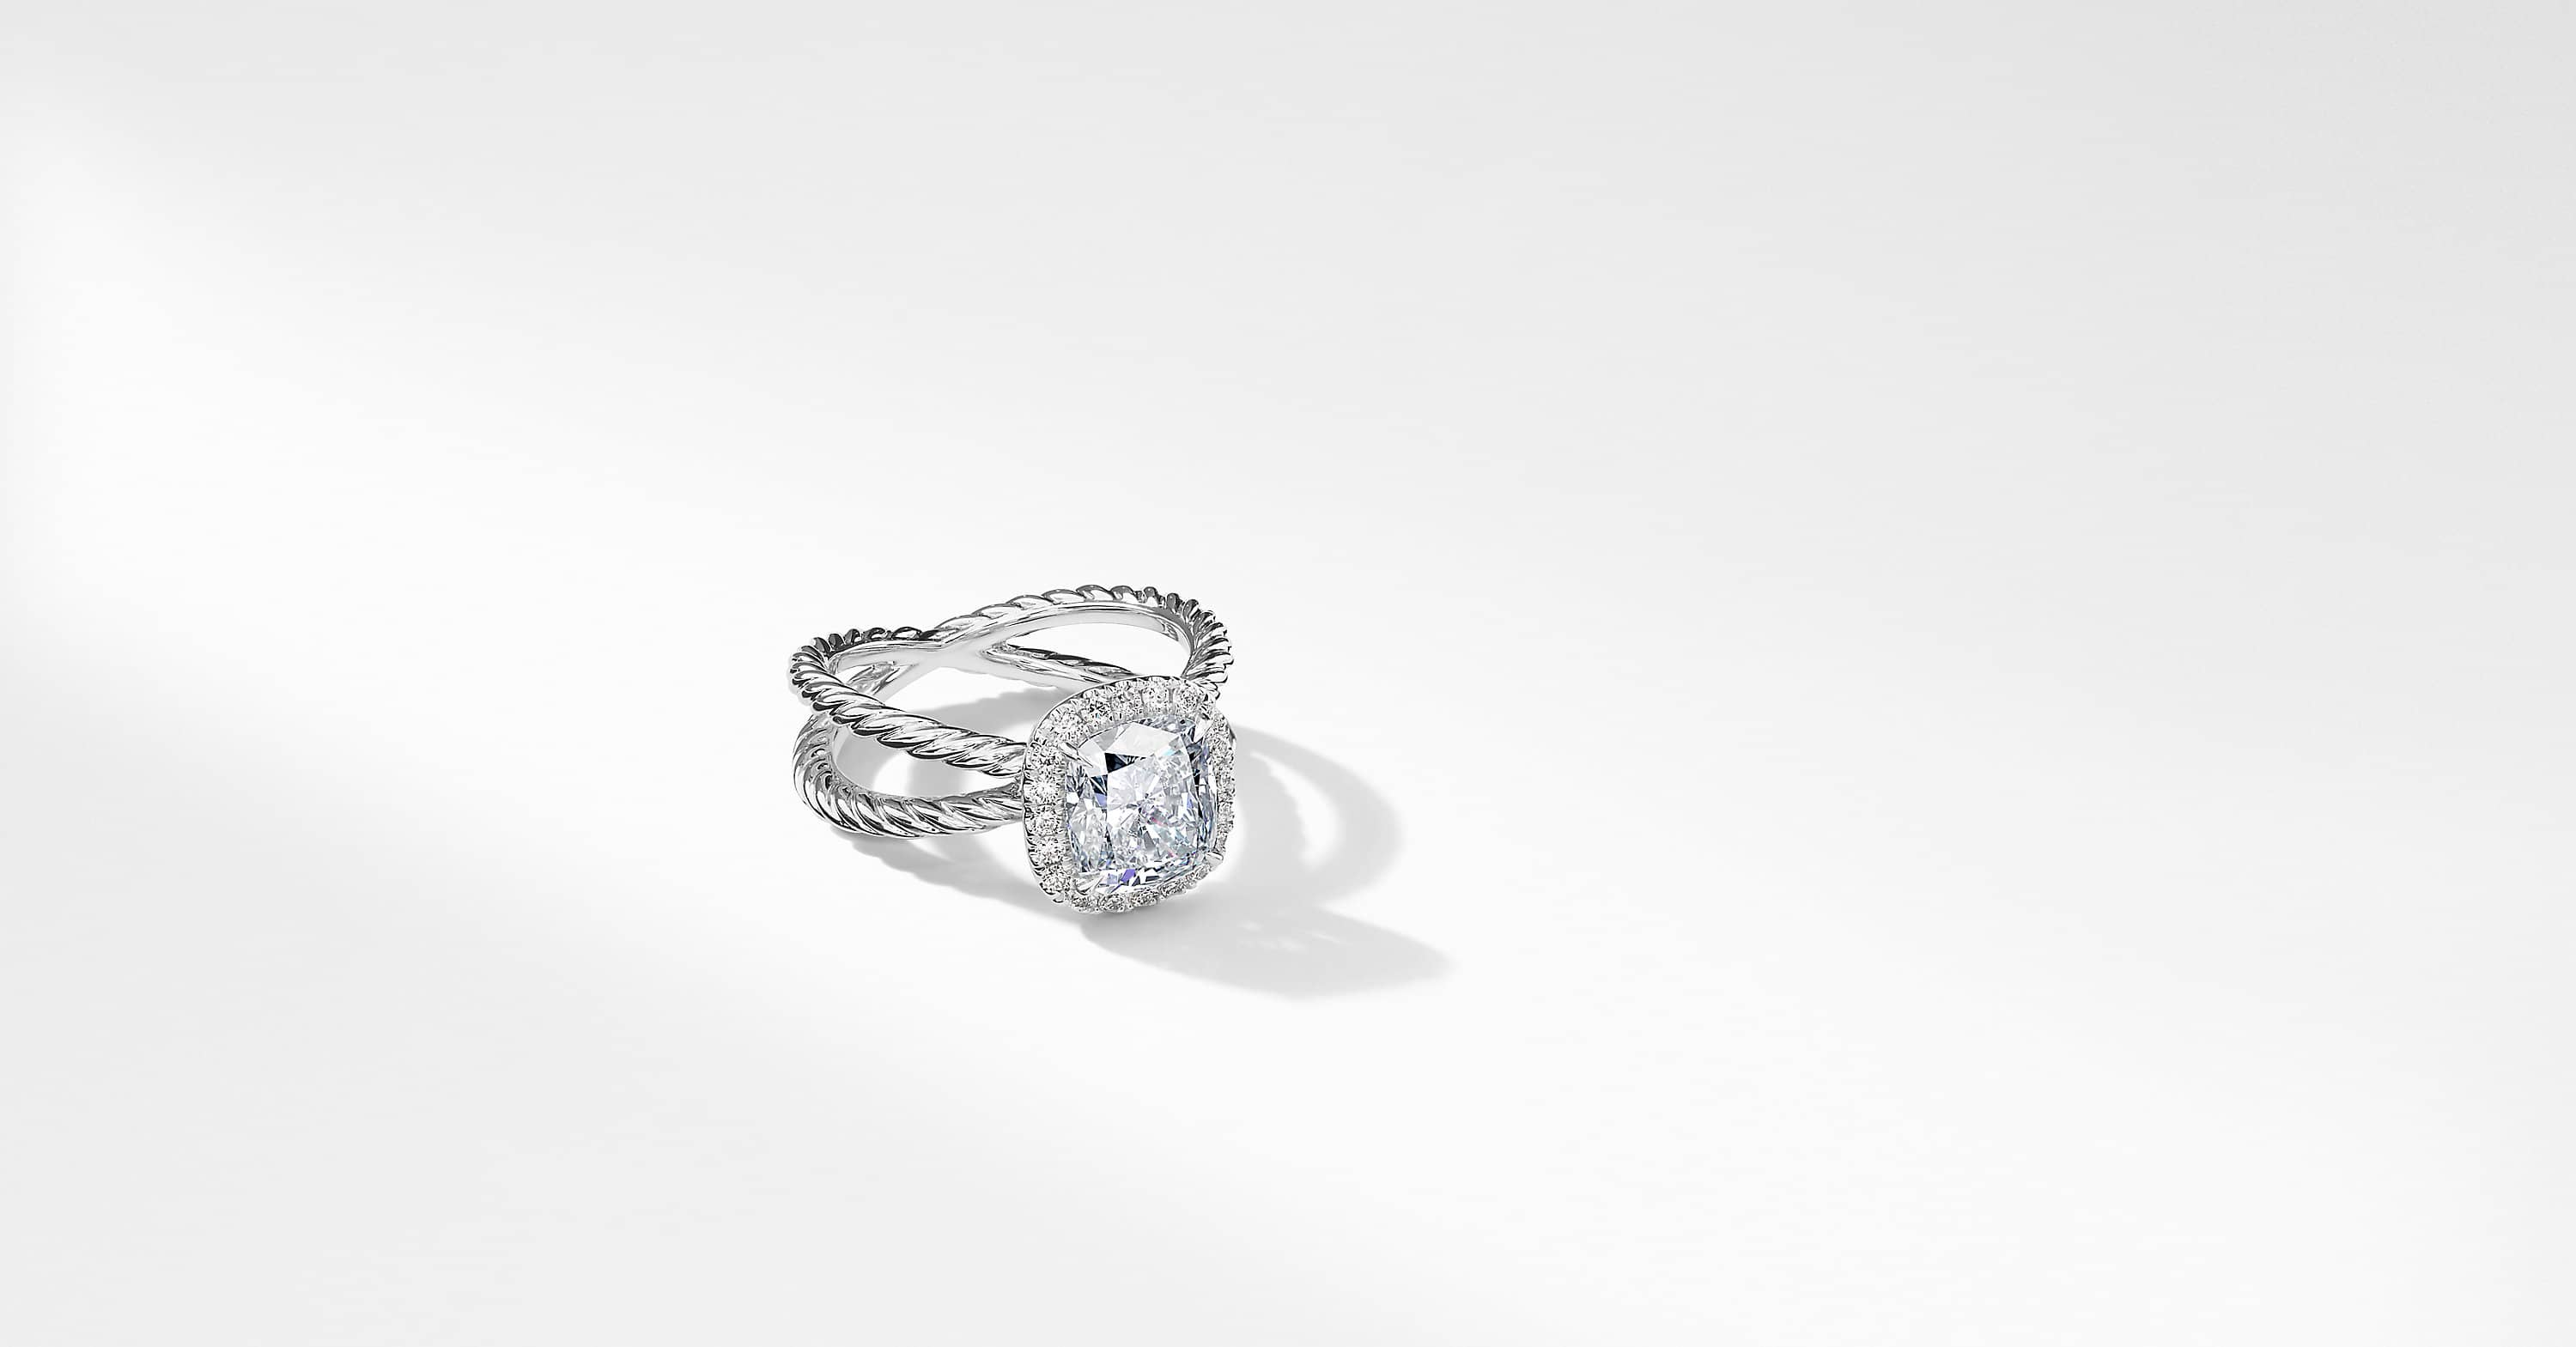 DY Crossover Capri Engagement Ring in Platinum, DY Signature Cut